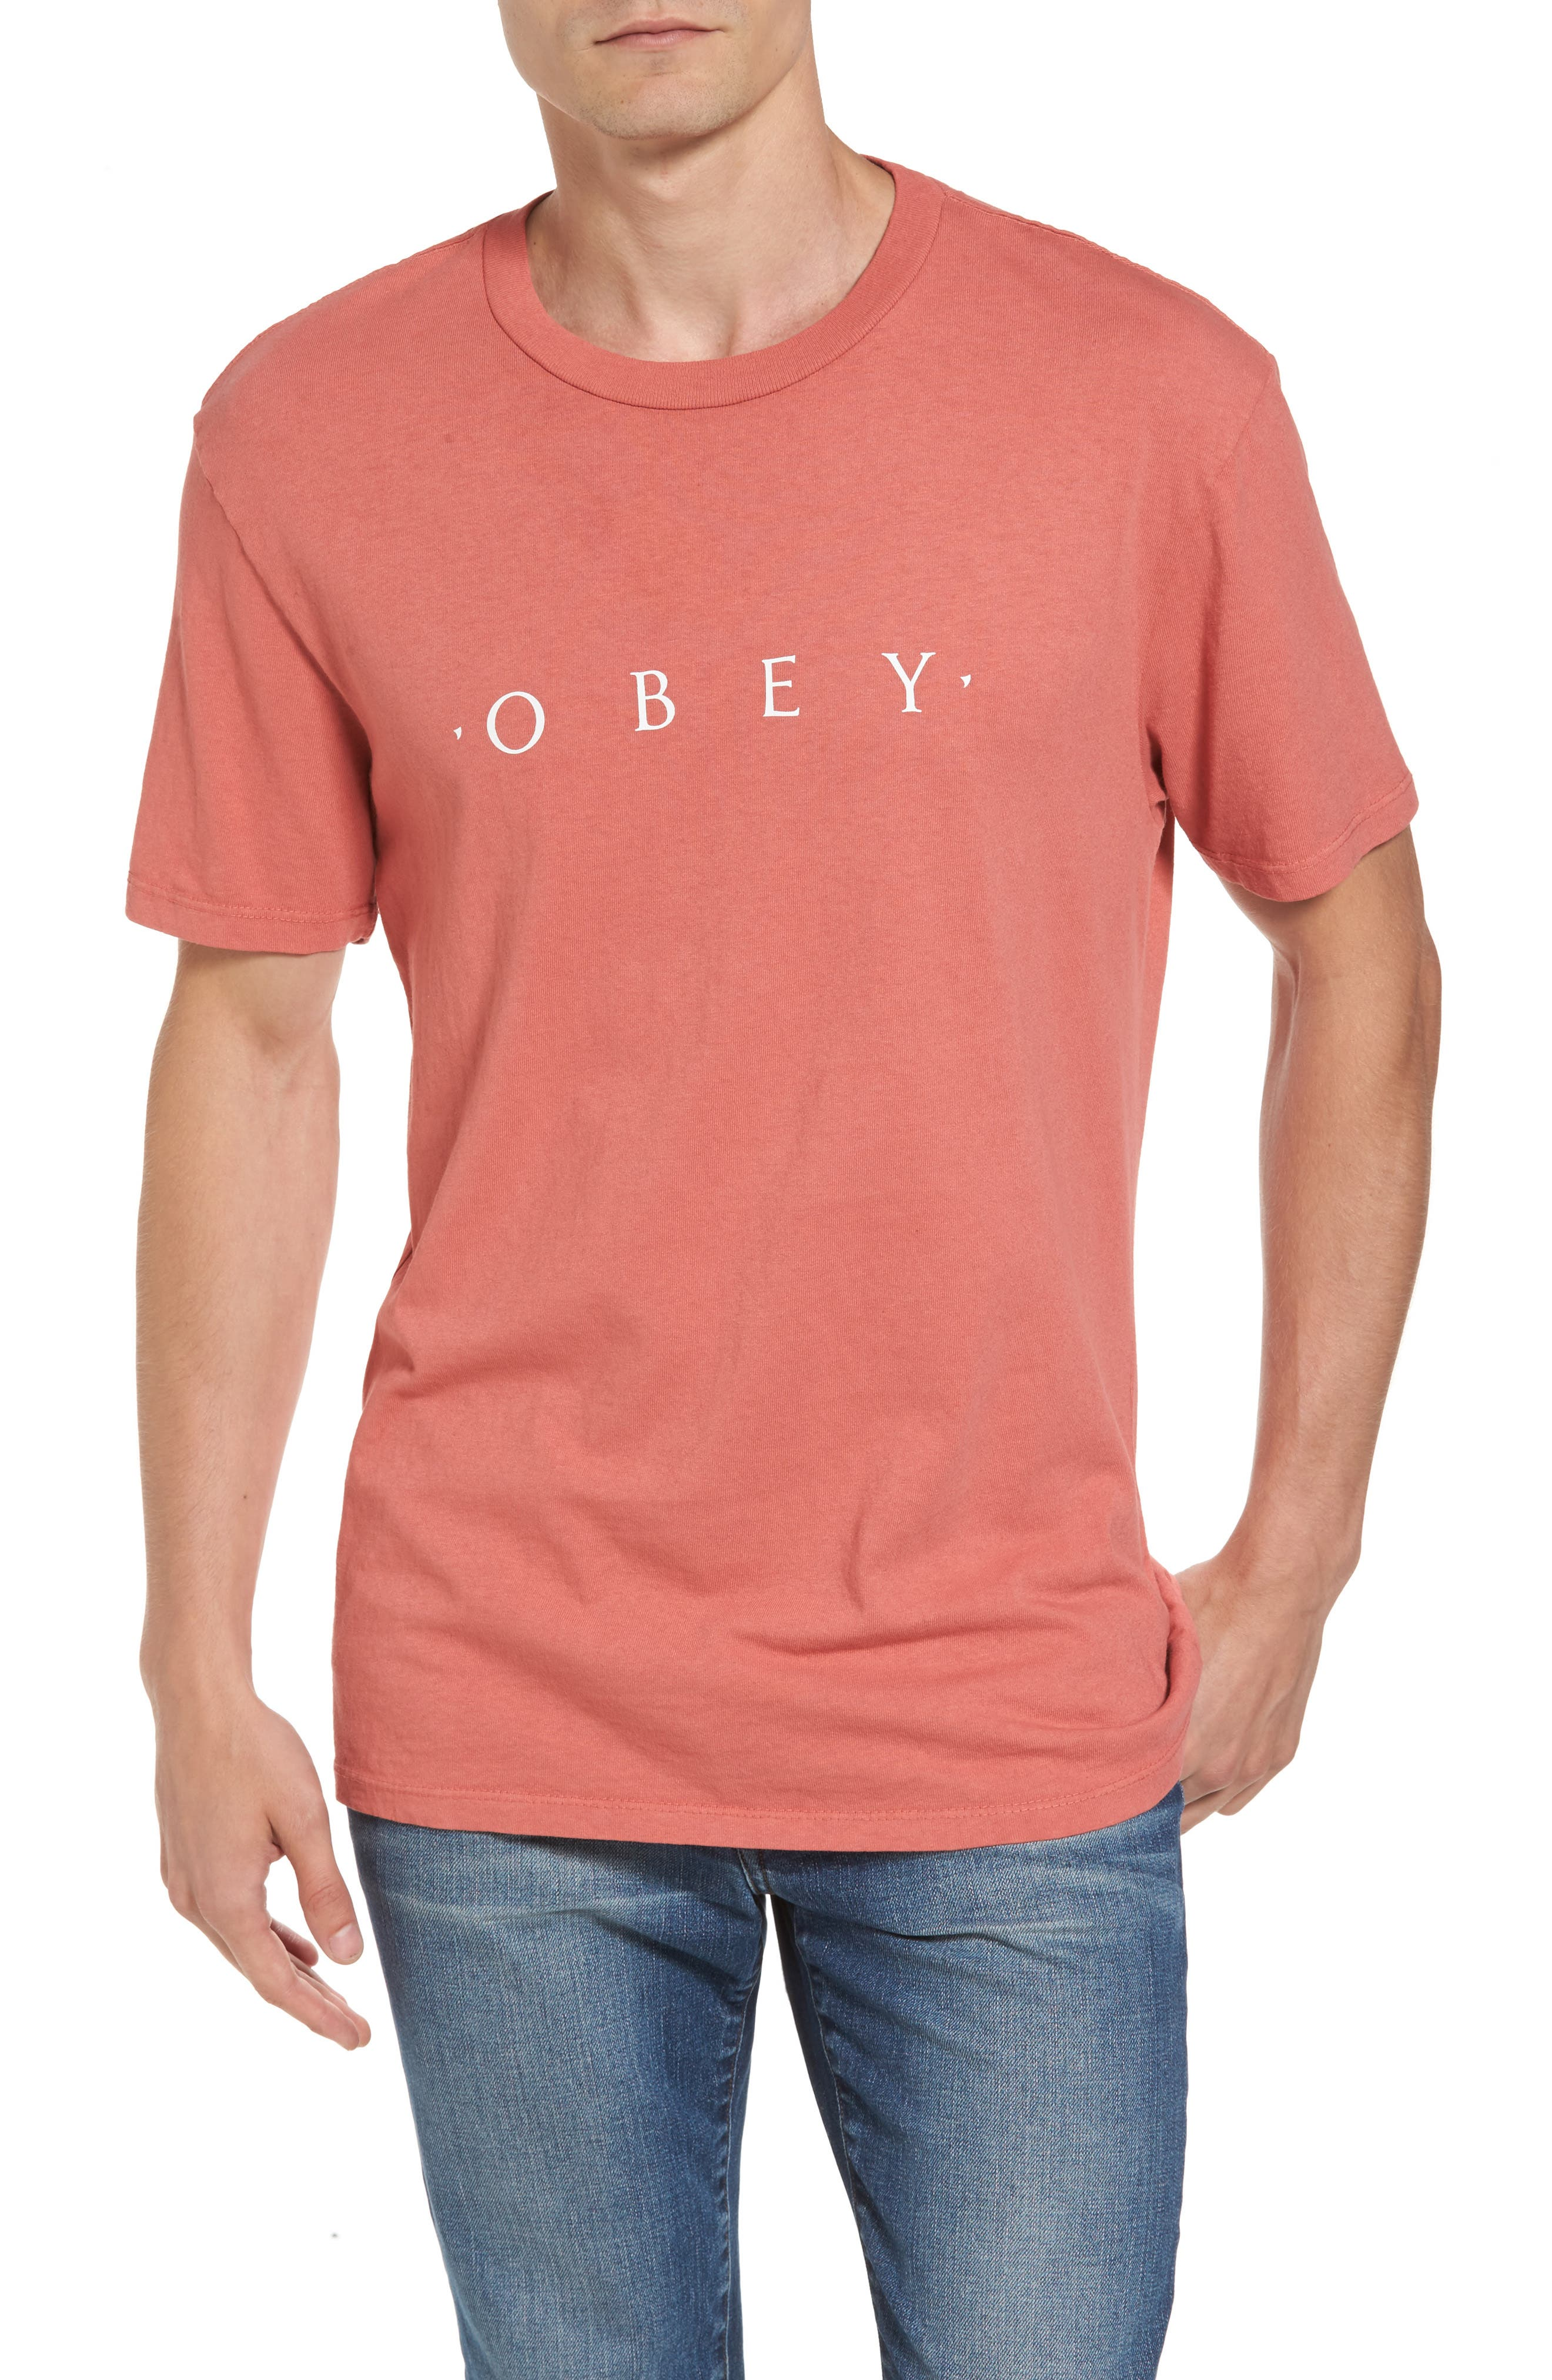 Obey Logo Graphic T-Shirt